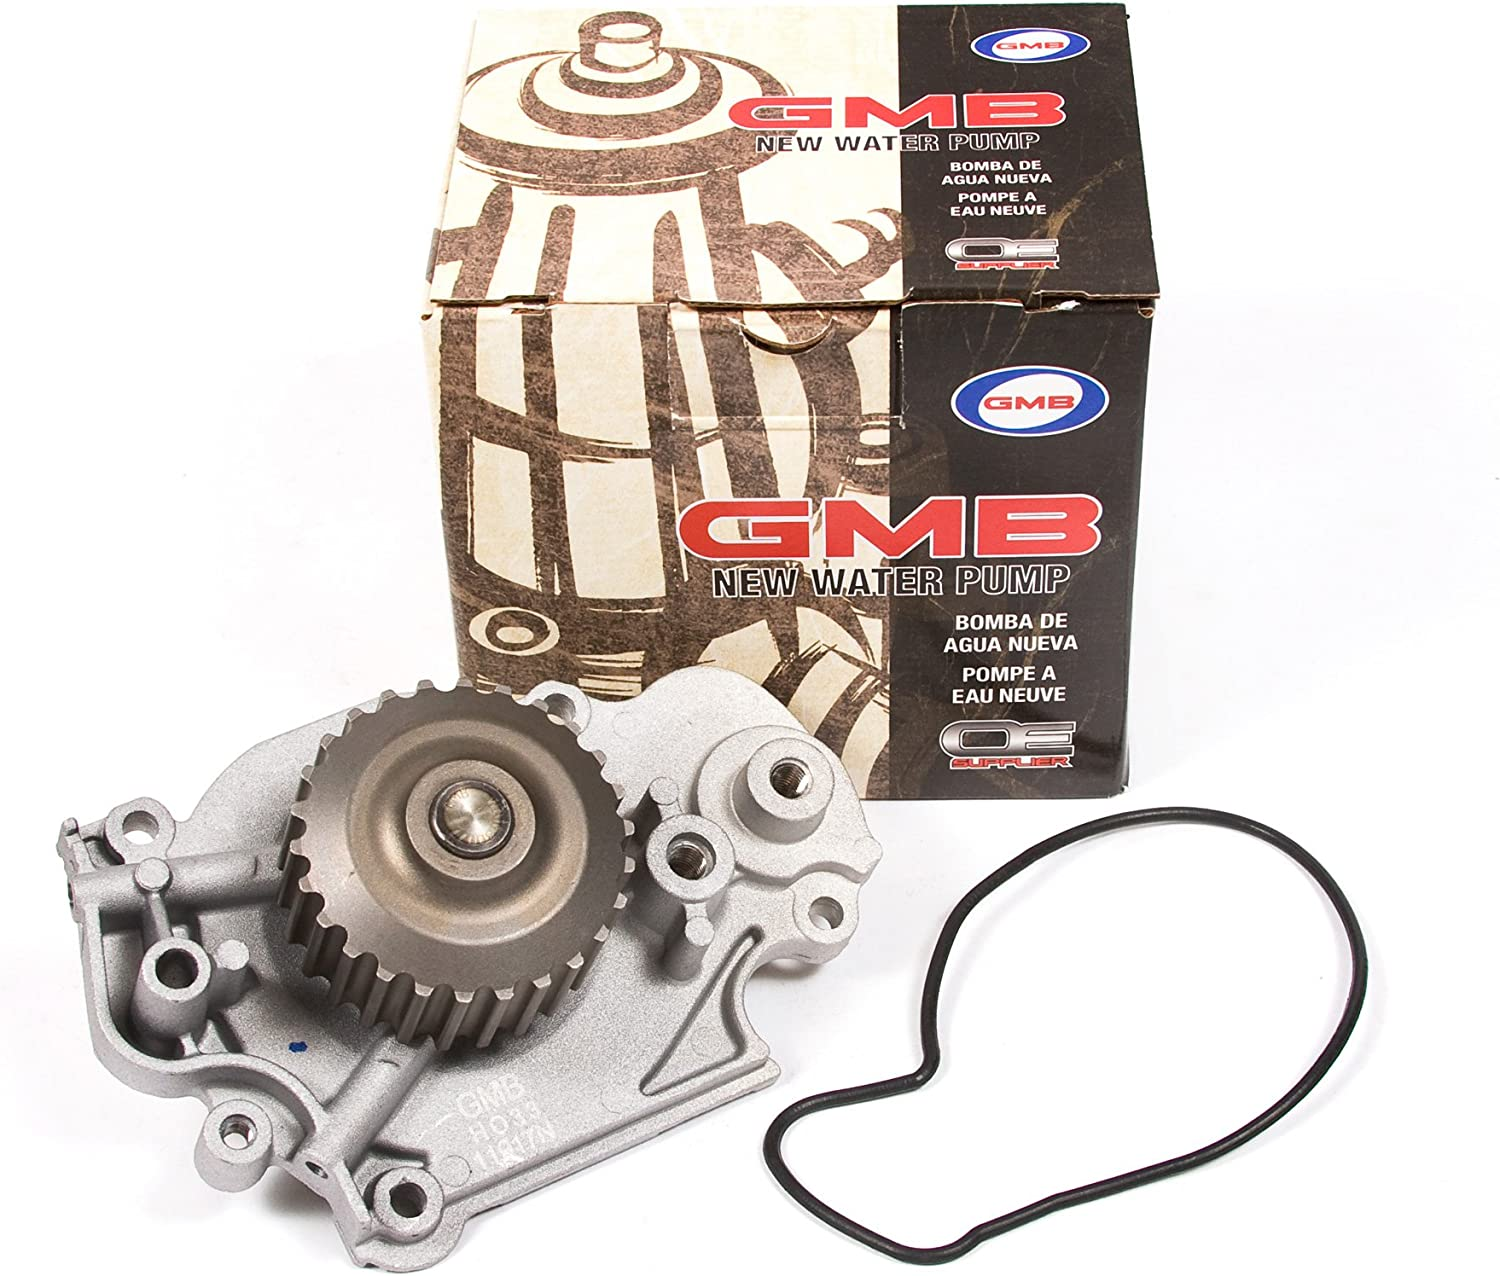 Evergreen TBK226VC Fits 93-01 Honda Prelude H22A1 H22A4 Timing Belt Kit Valve Cover Gasket GMB Water Pump